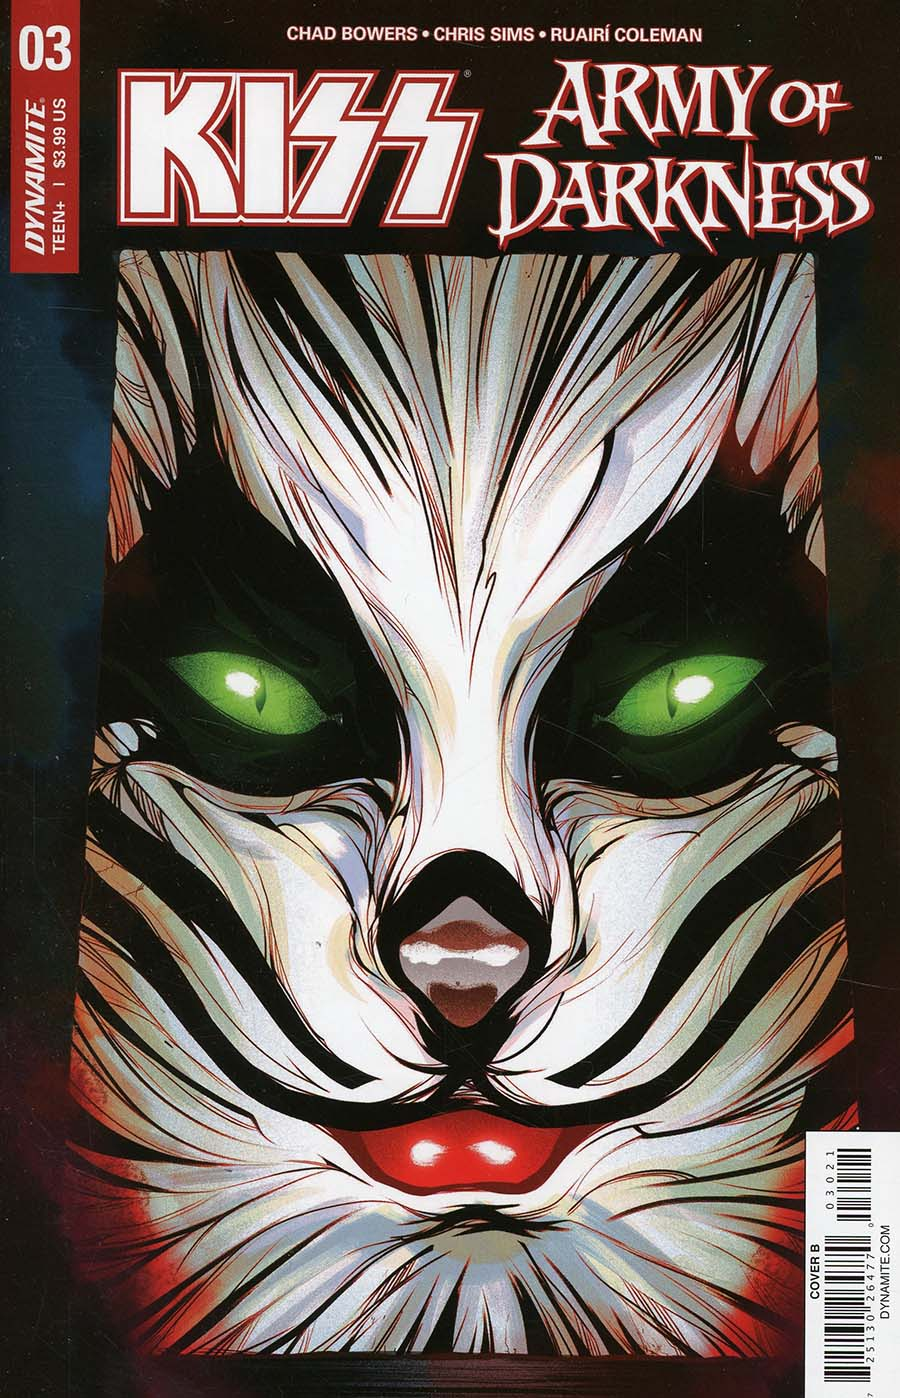 KISS Army Of Darkness #3 Cover B Variant Goni Montes Catman Necronomicon Cover